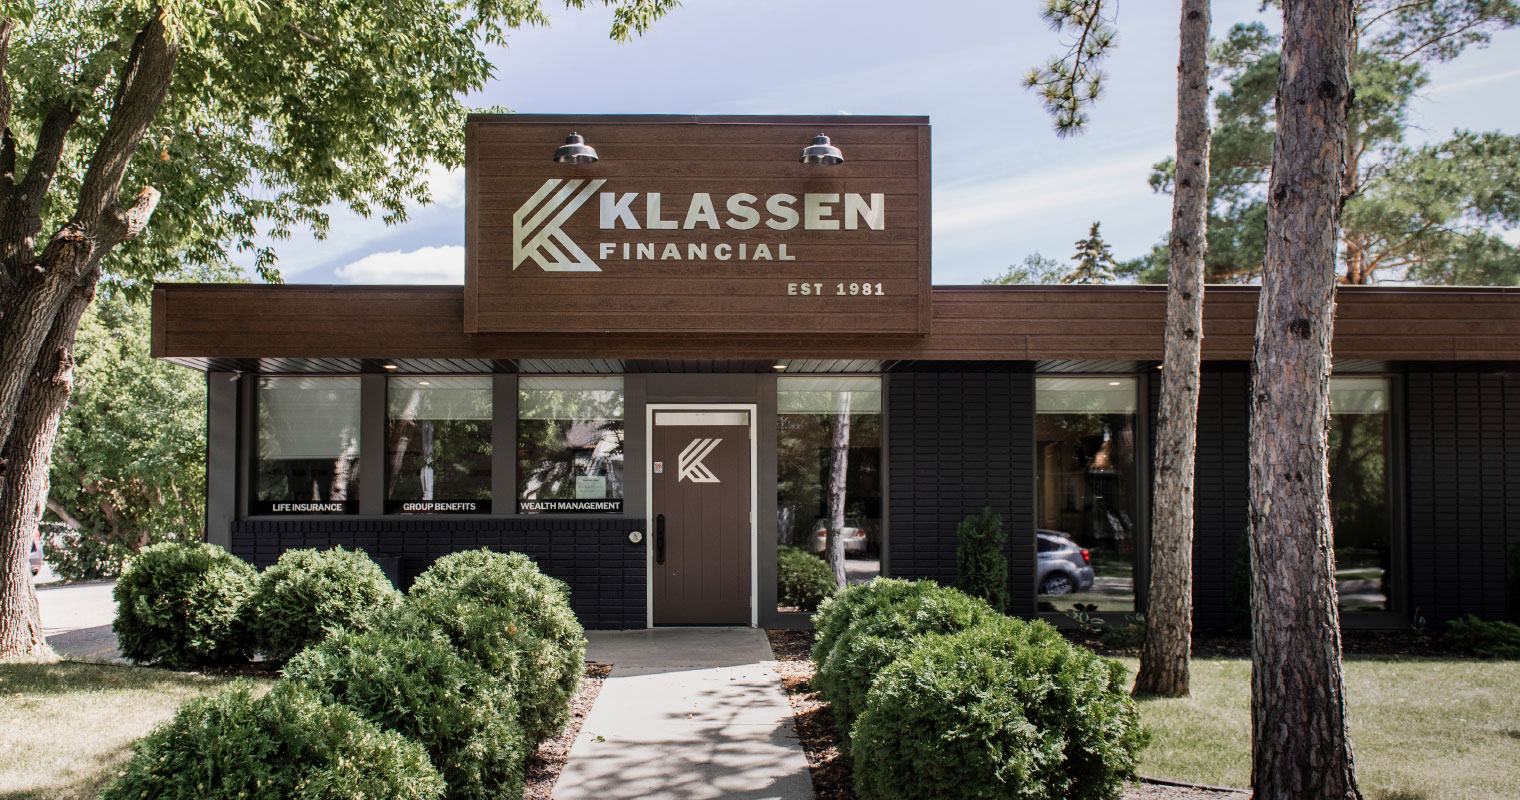 Klassen Financial Building